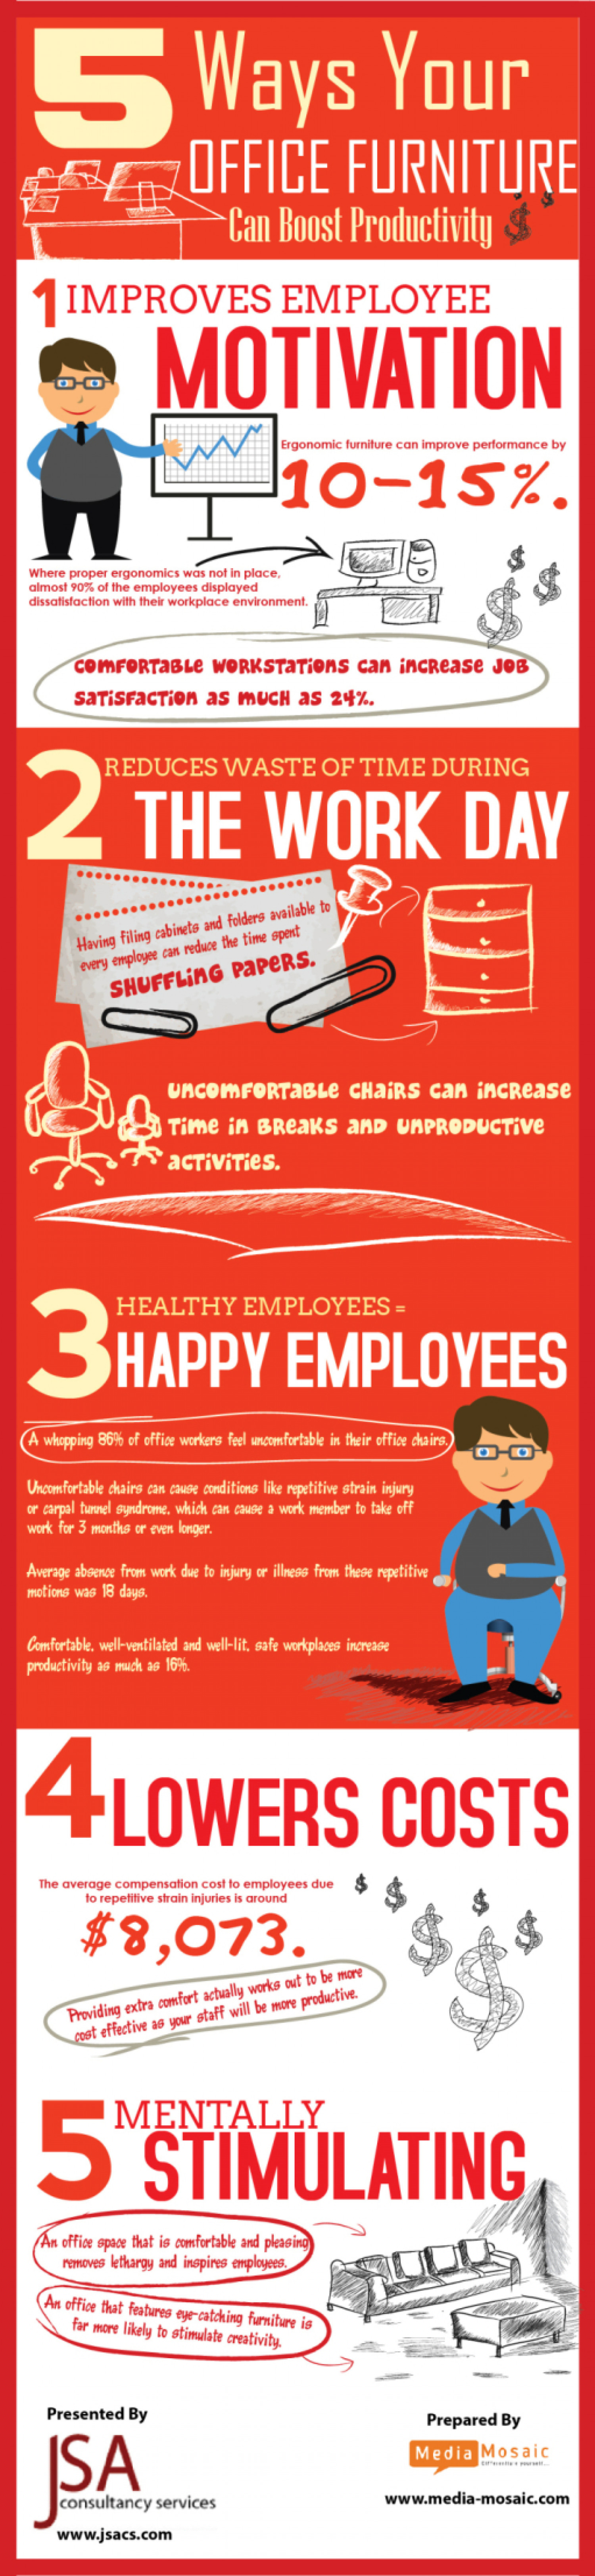 5 Ways Your Office Furniture Can Boost Productivity Infographic